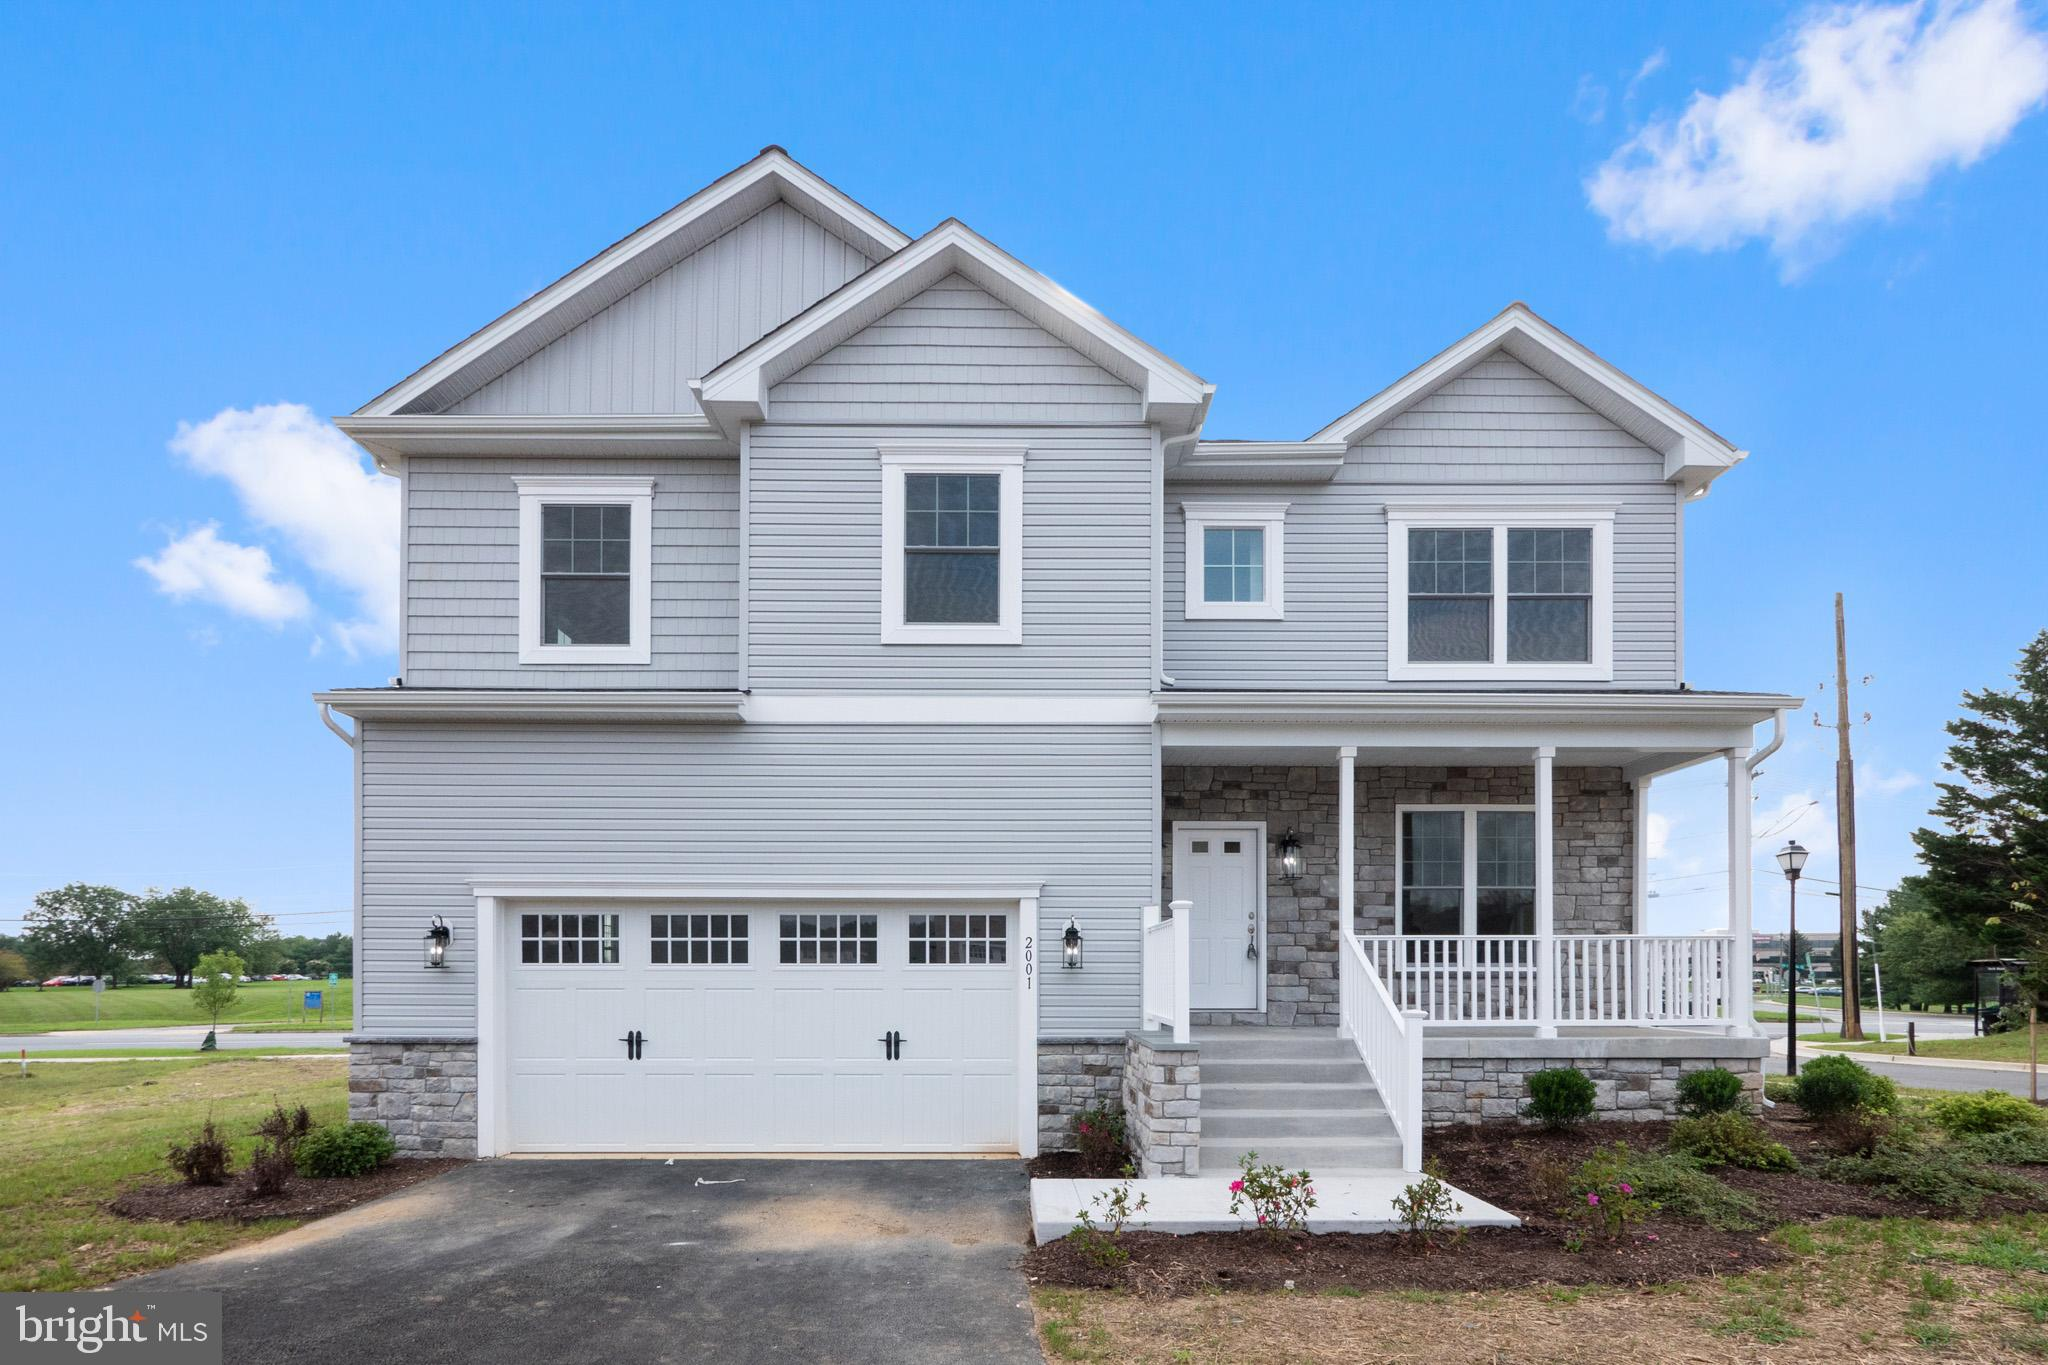 18617 STRAWBERRY KNOLL ROAD, GAITHERSBURG, MD 20879